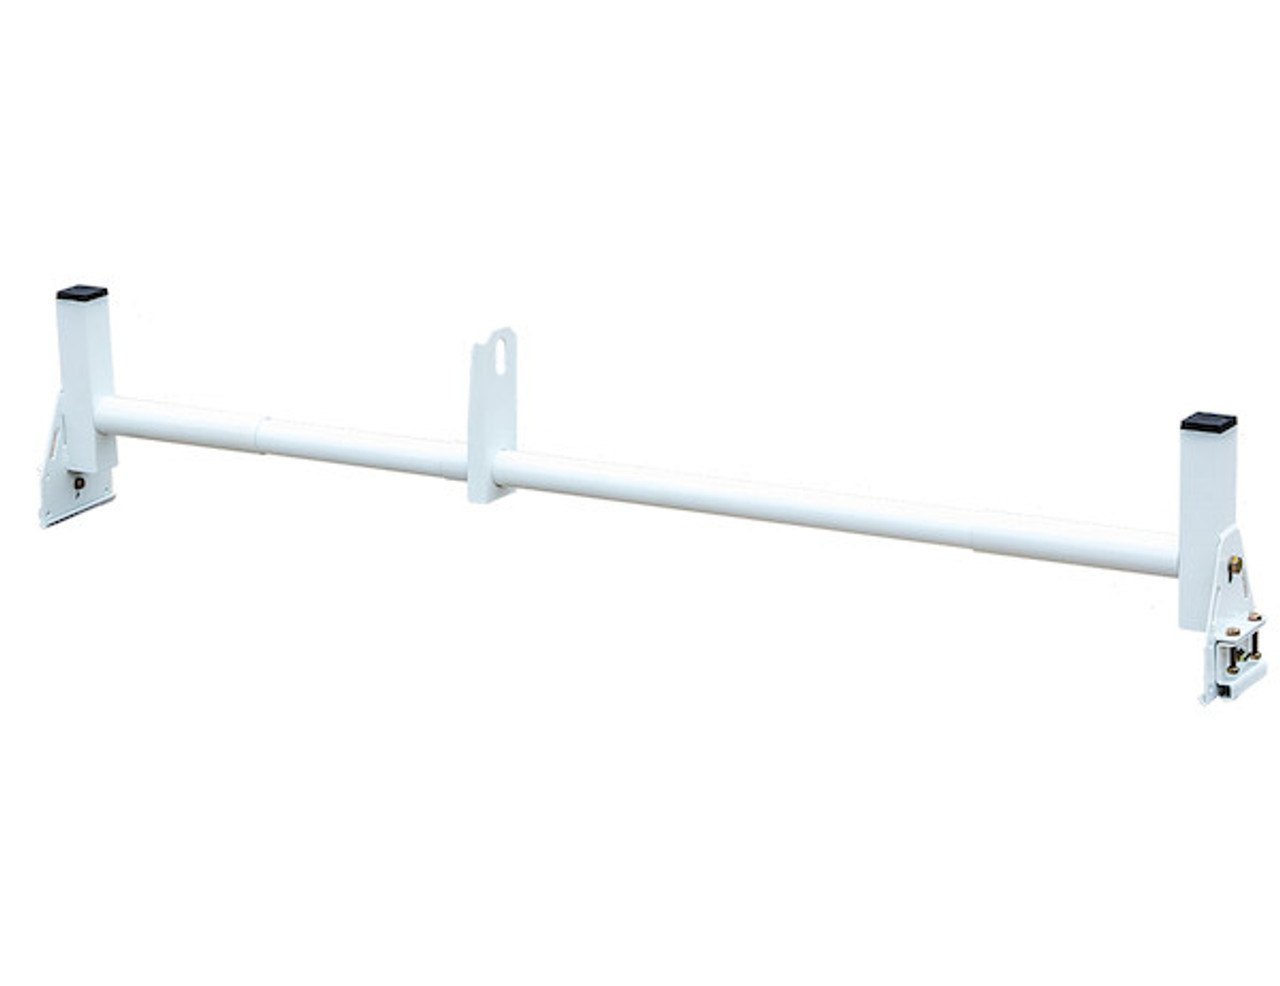 BUYERS 1501311 Optional White Crossbar For Van Ladder Rack-1501310 Picture # 1 SOLD SEPARATELY